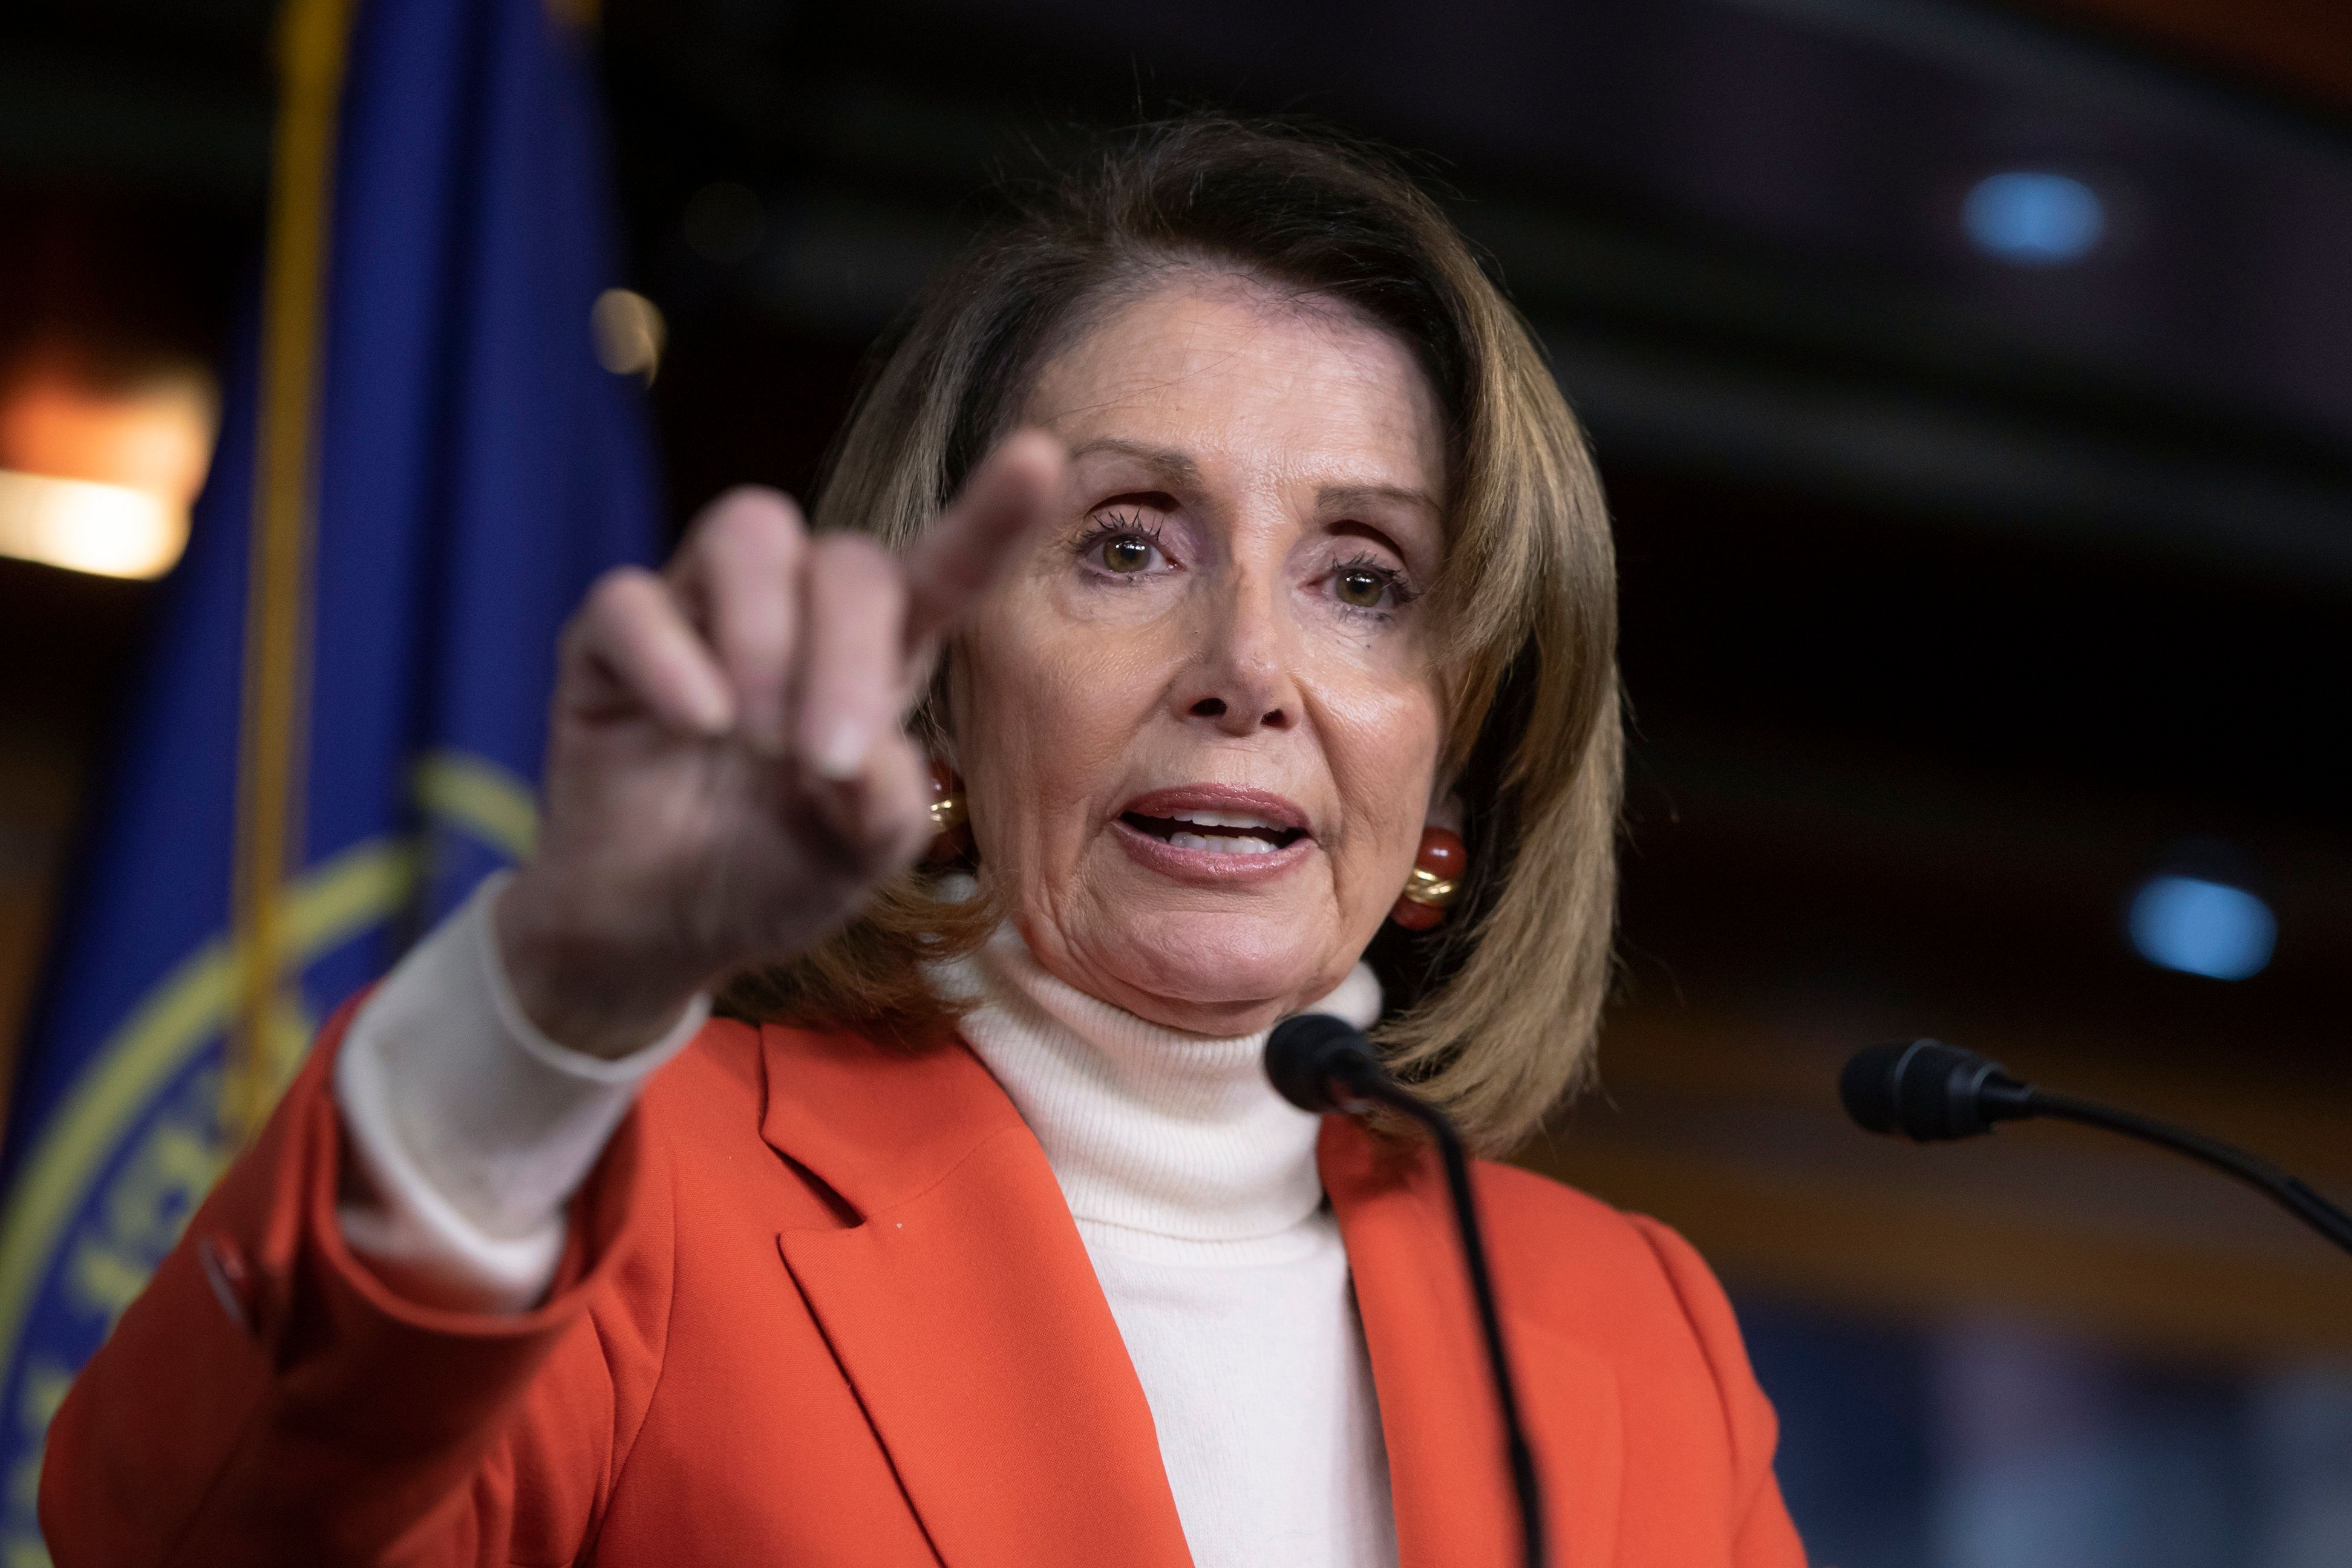 In this Nov. 15, 2018 file photo, House Minority Leader Nancy Pelosi, D-Calif., talks to reporters during a news conference at the Capitol in Washington. Pelosi appears to be having some success shrinking the ranks of Democratic lawmakers opposing her bid to serve as the next speaker of the House. Rep. Brian Higgins of upstate New York said Wednesday he will now support Pelosi after earlier signing on to a letter opposing her bid. One day earlier, Marcia Fudge of Ohio announced she would back Pelosi after earlier flirting with the idea of running for the position herself.  (AP Photo/J. Scott Applewhite)